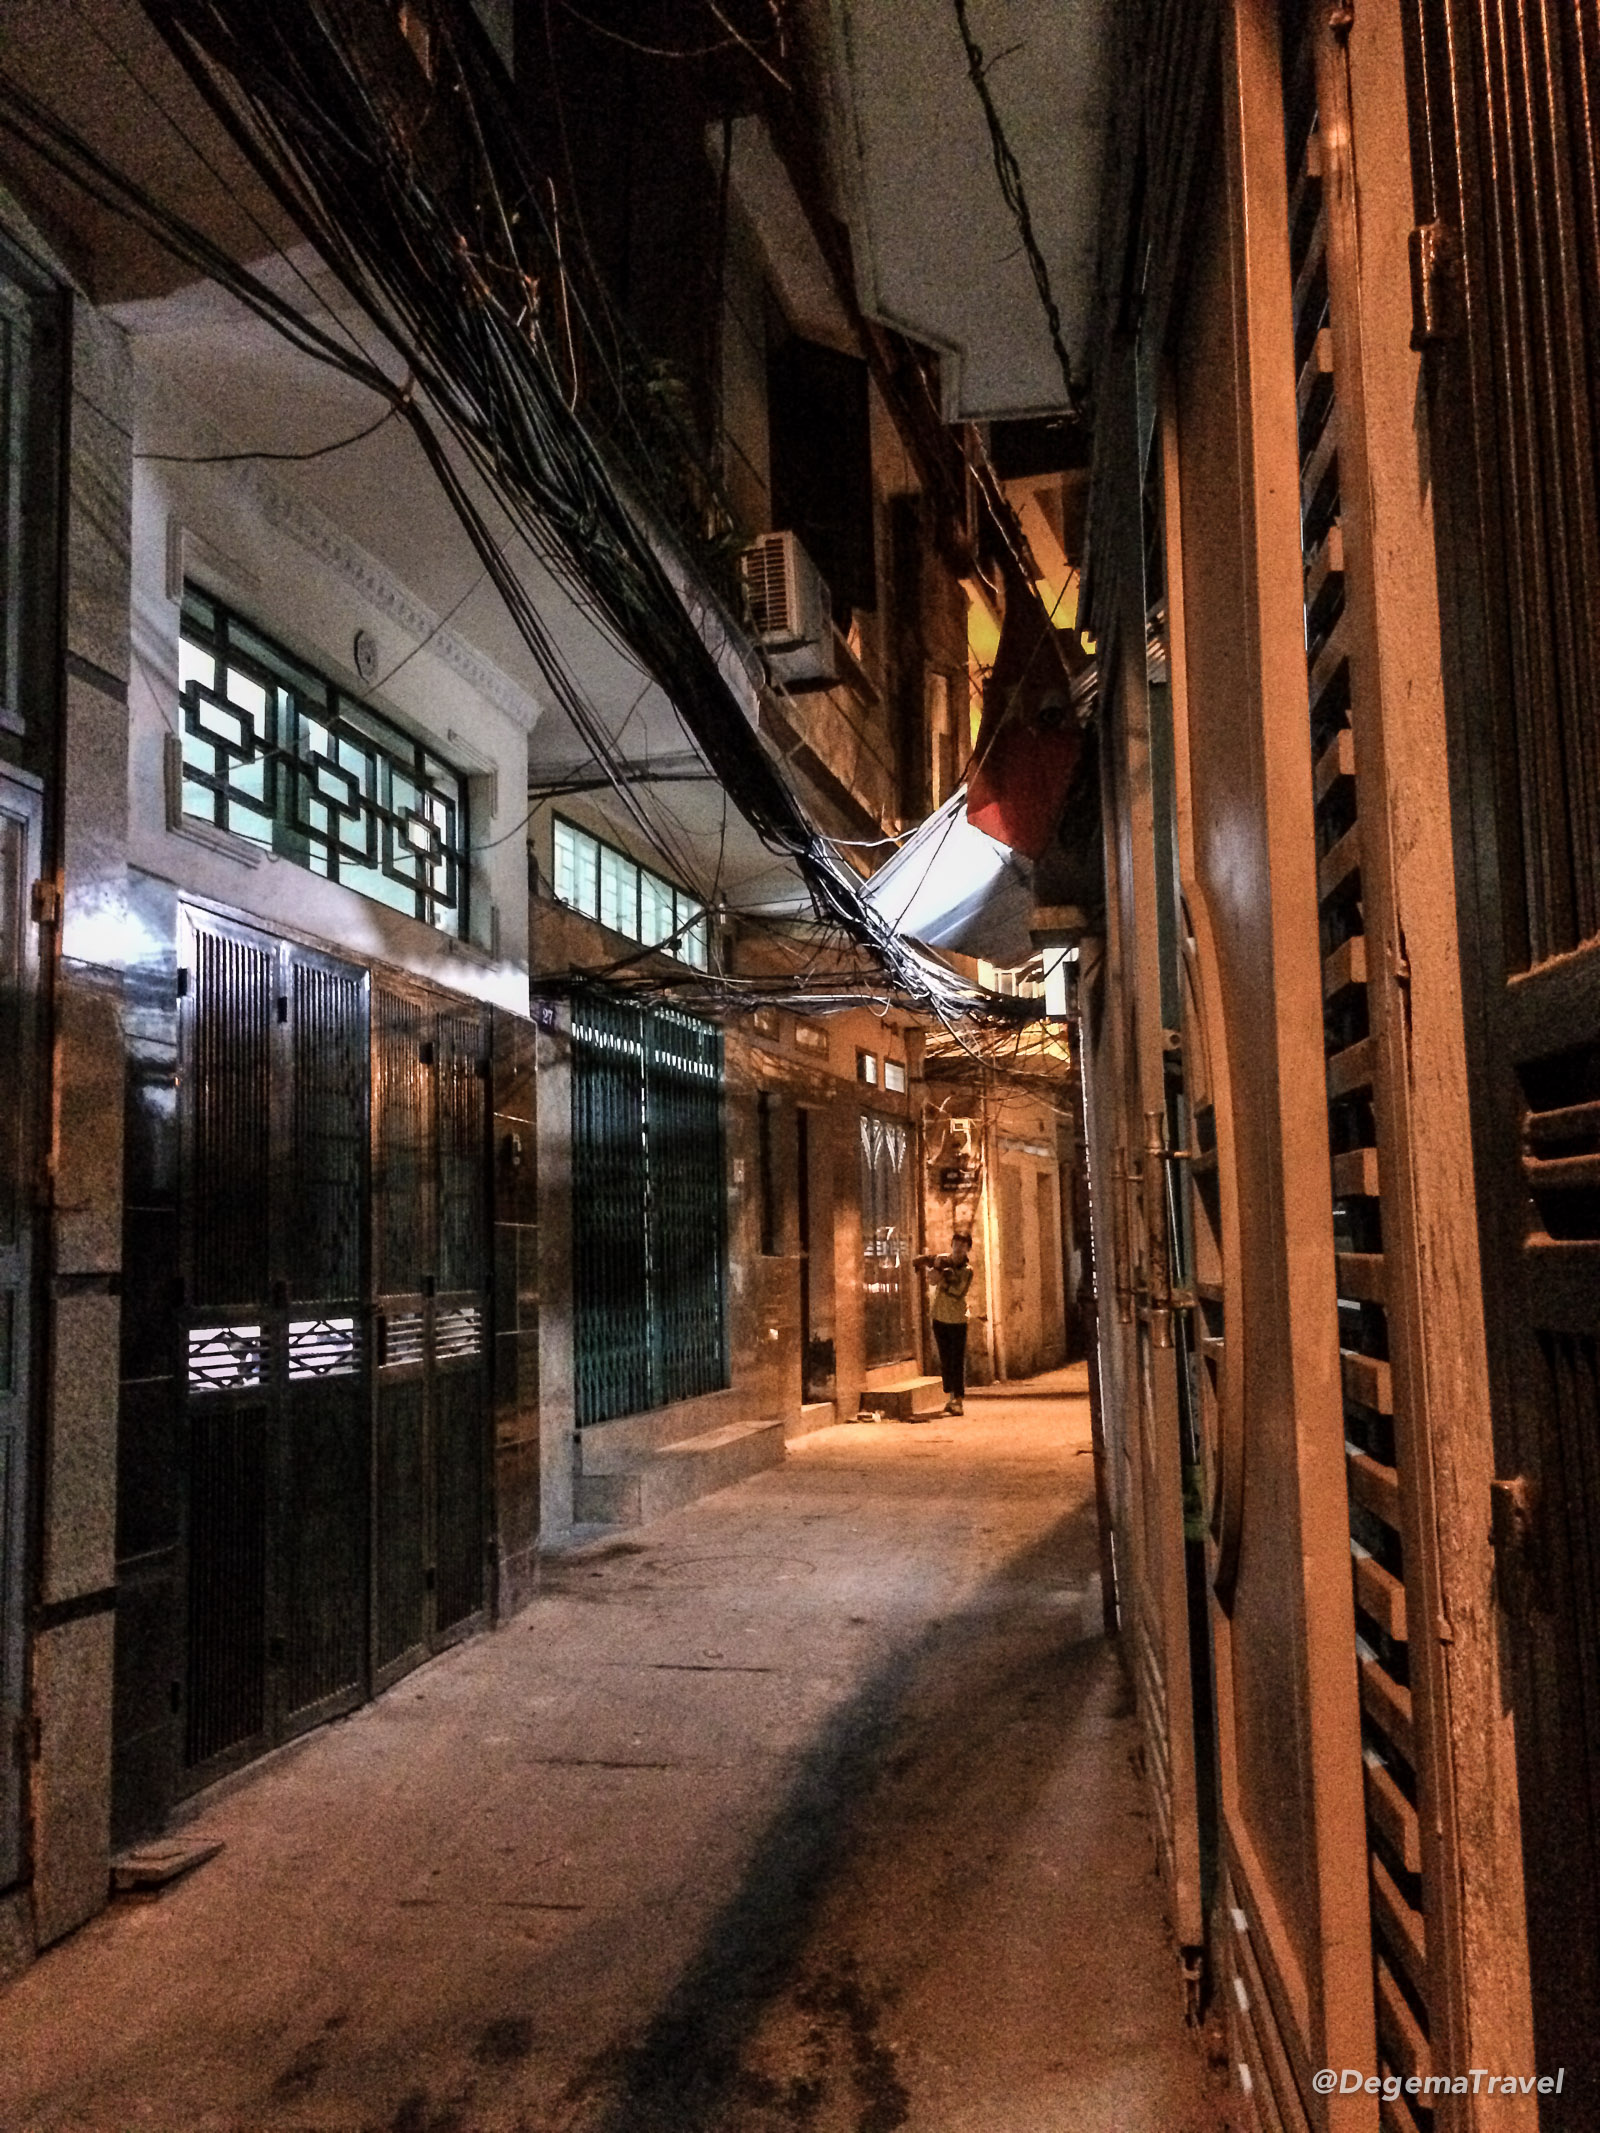 A narrow alley in Hanoi, Vietnam